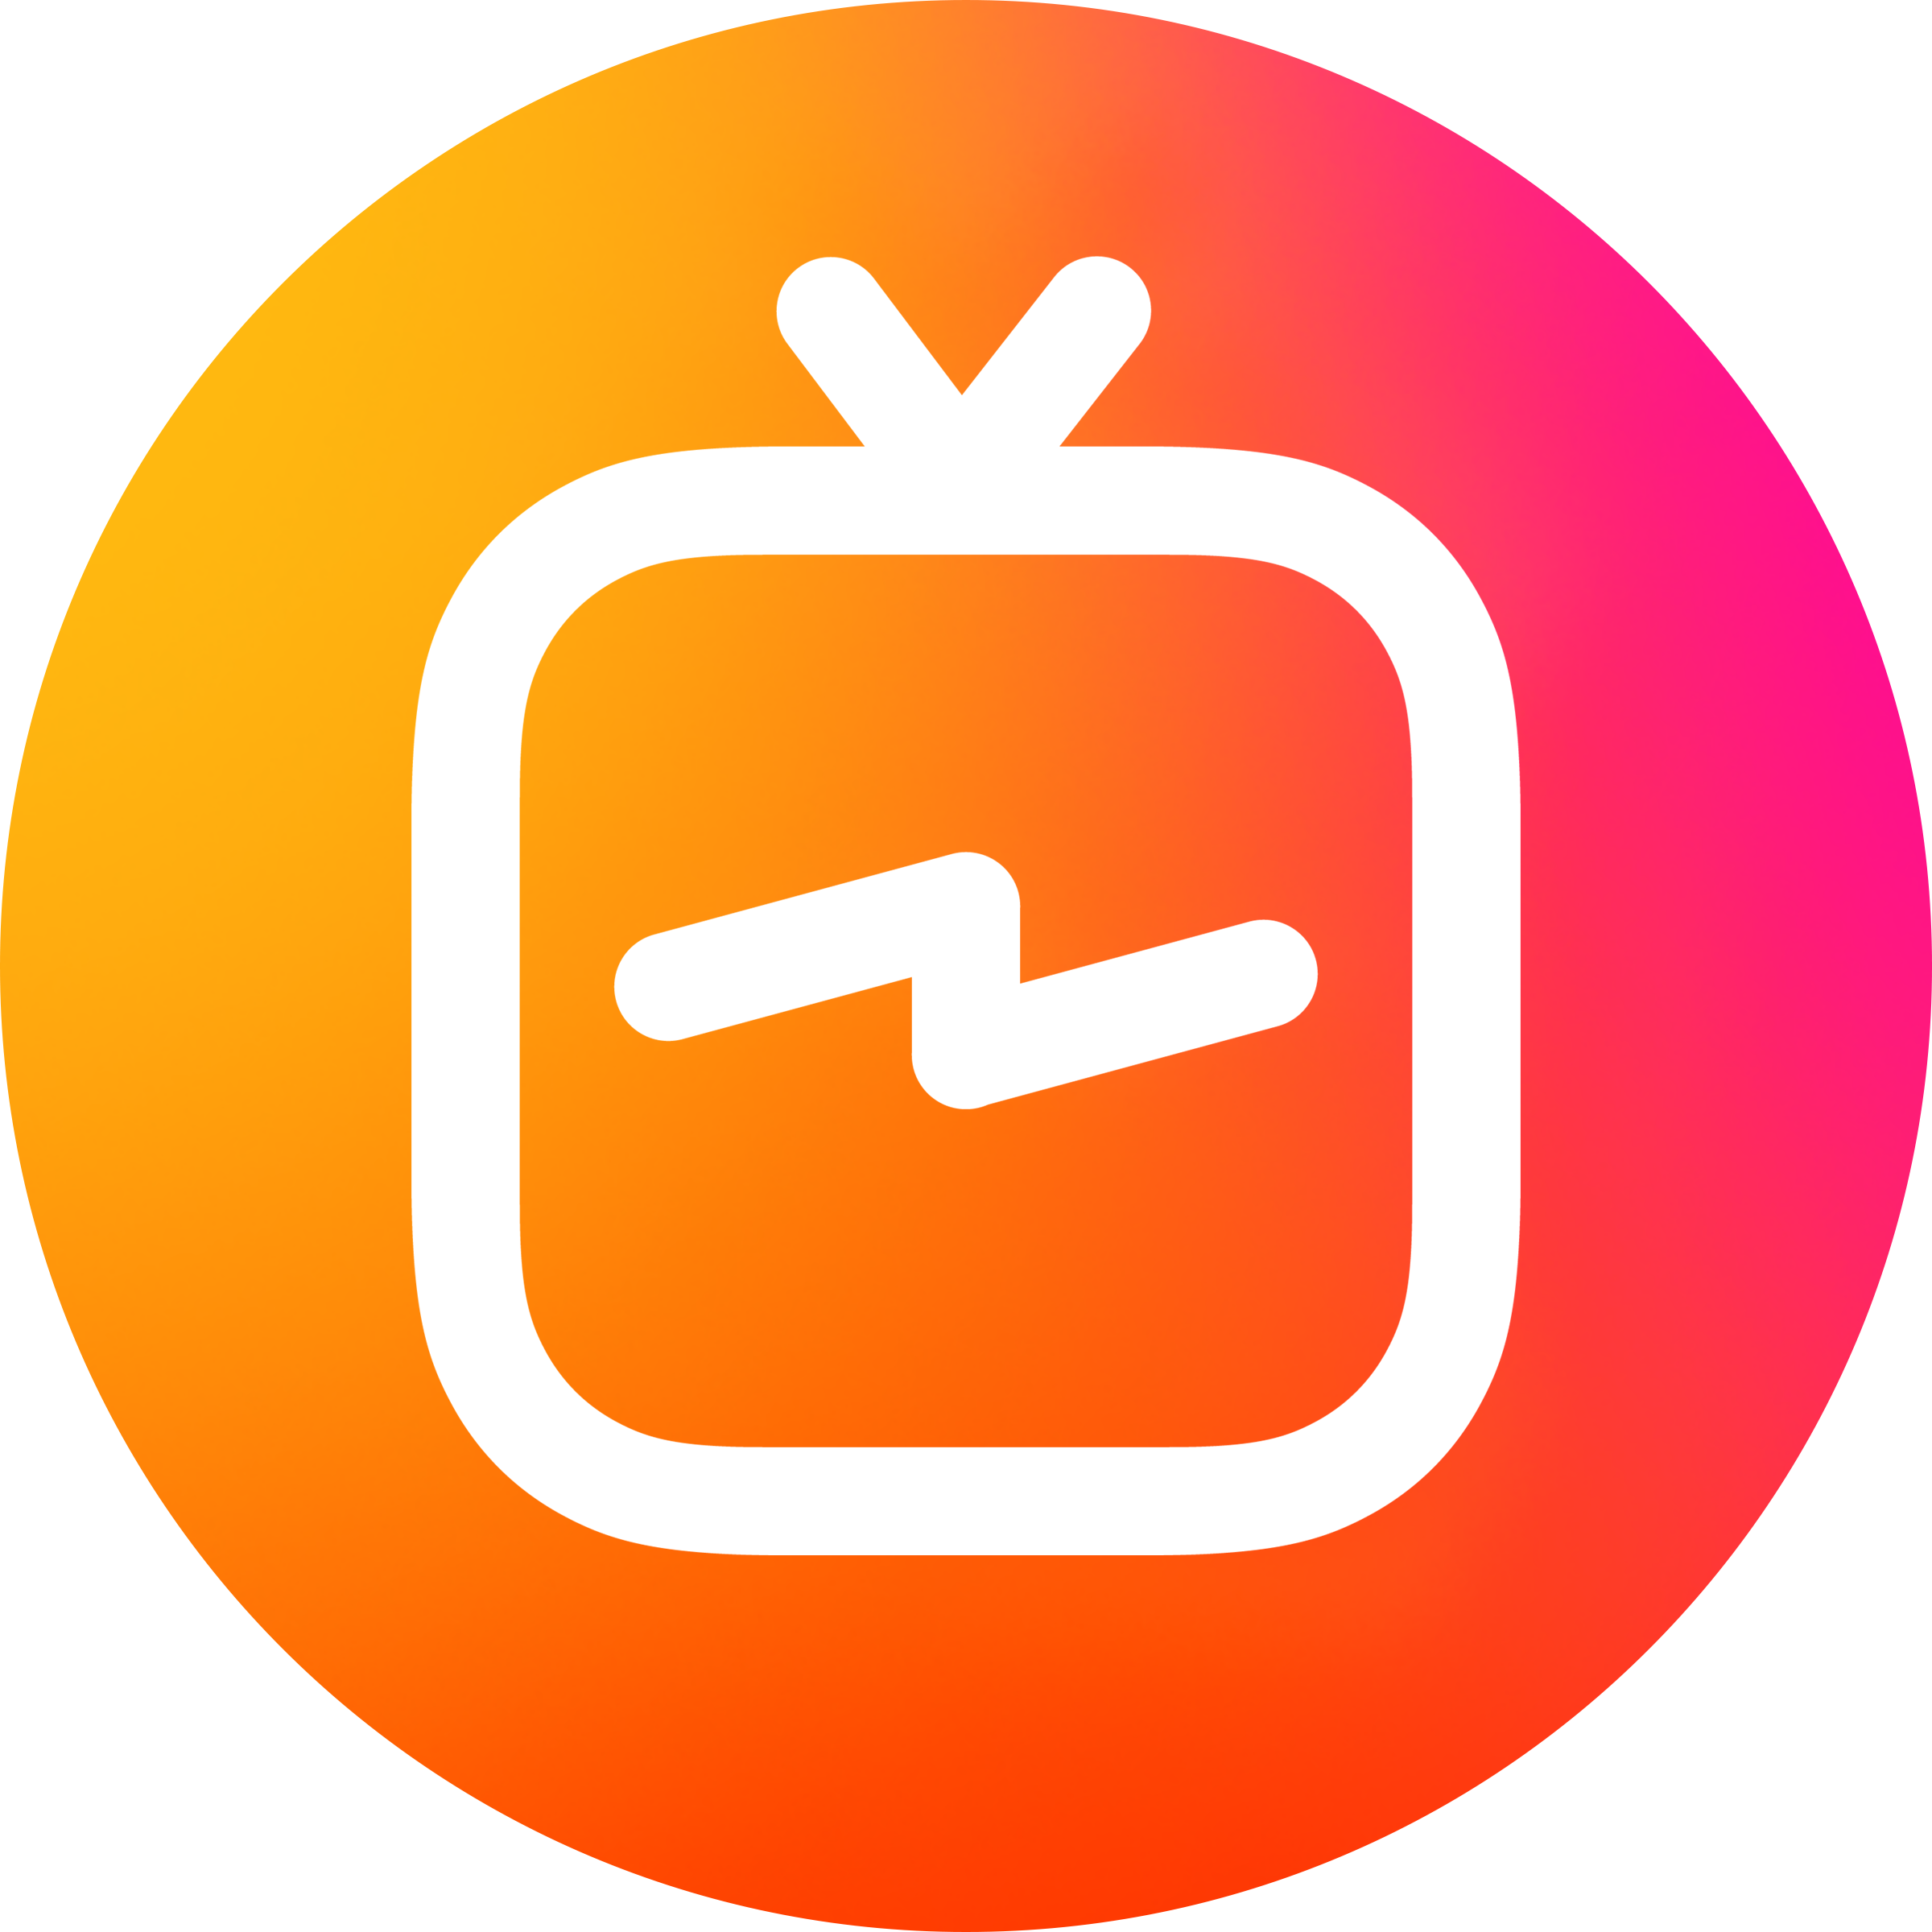 Instagram png transparent background. New igtv logo edigital